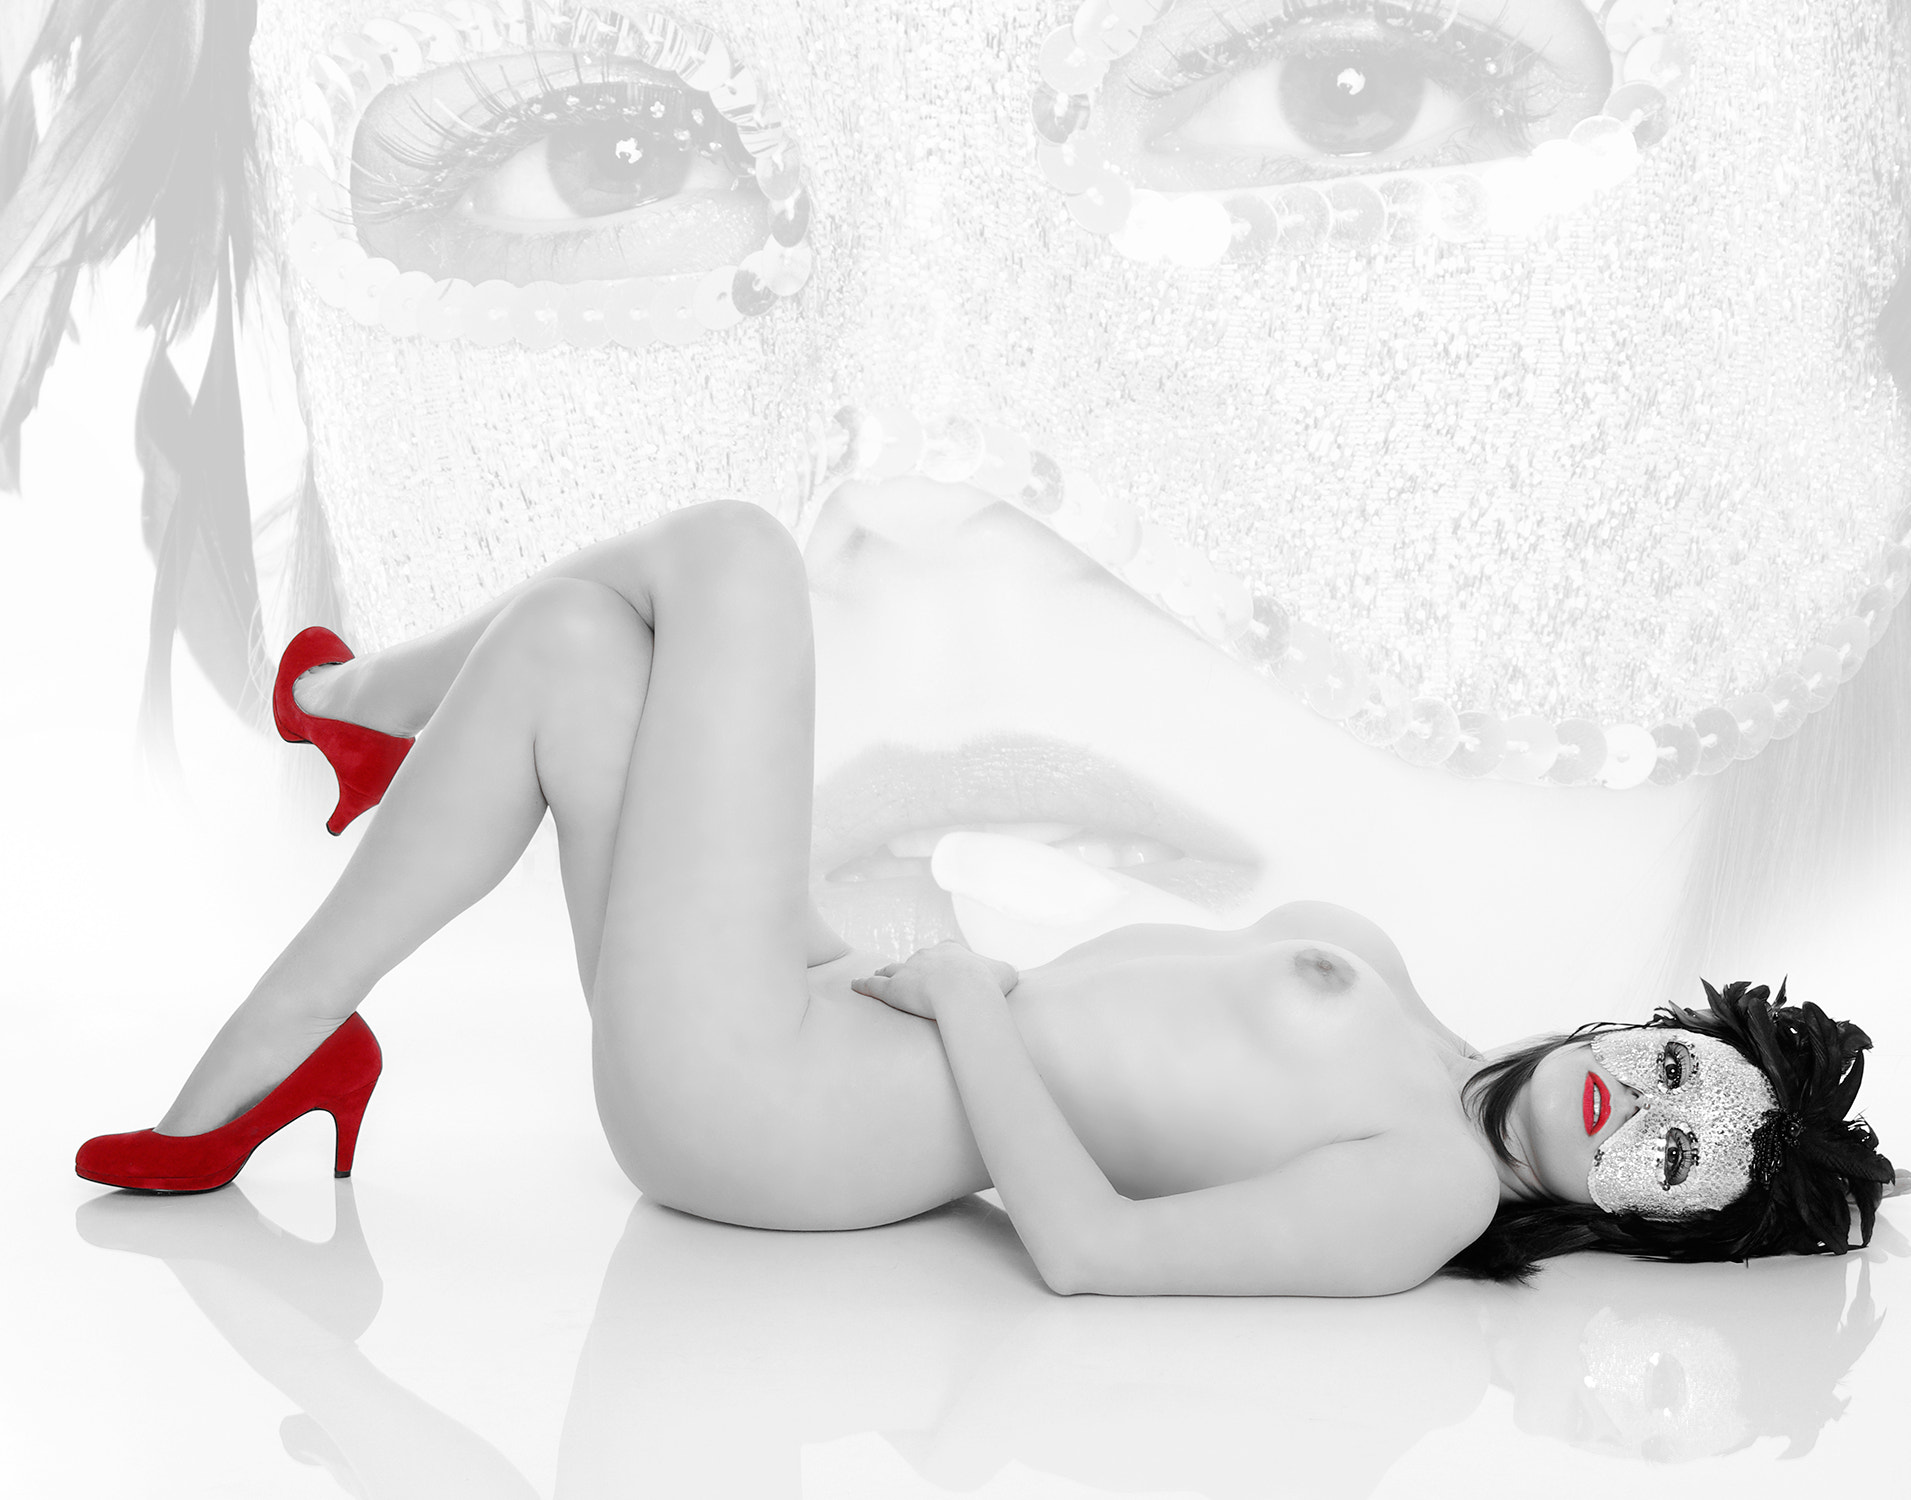 Photograph Red Shoes by Michael Hesseler on 500px